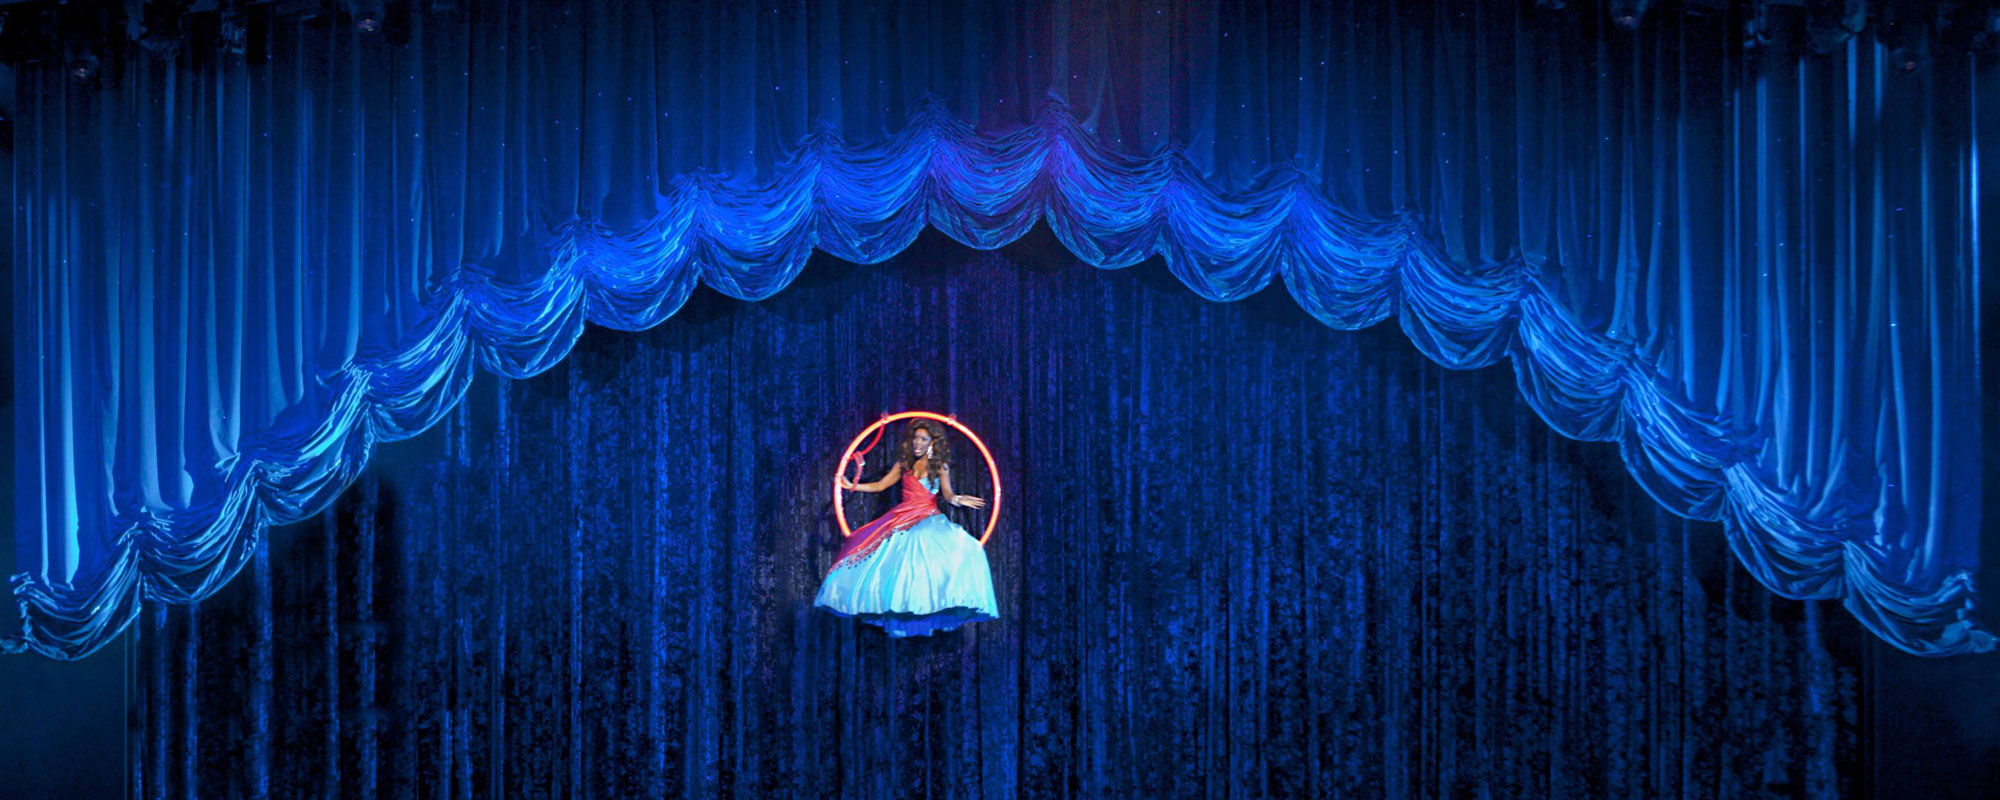 Blue Curtain With Performer